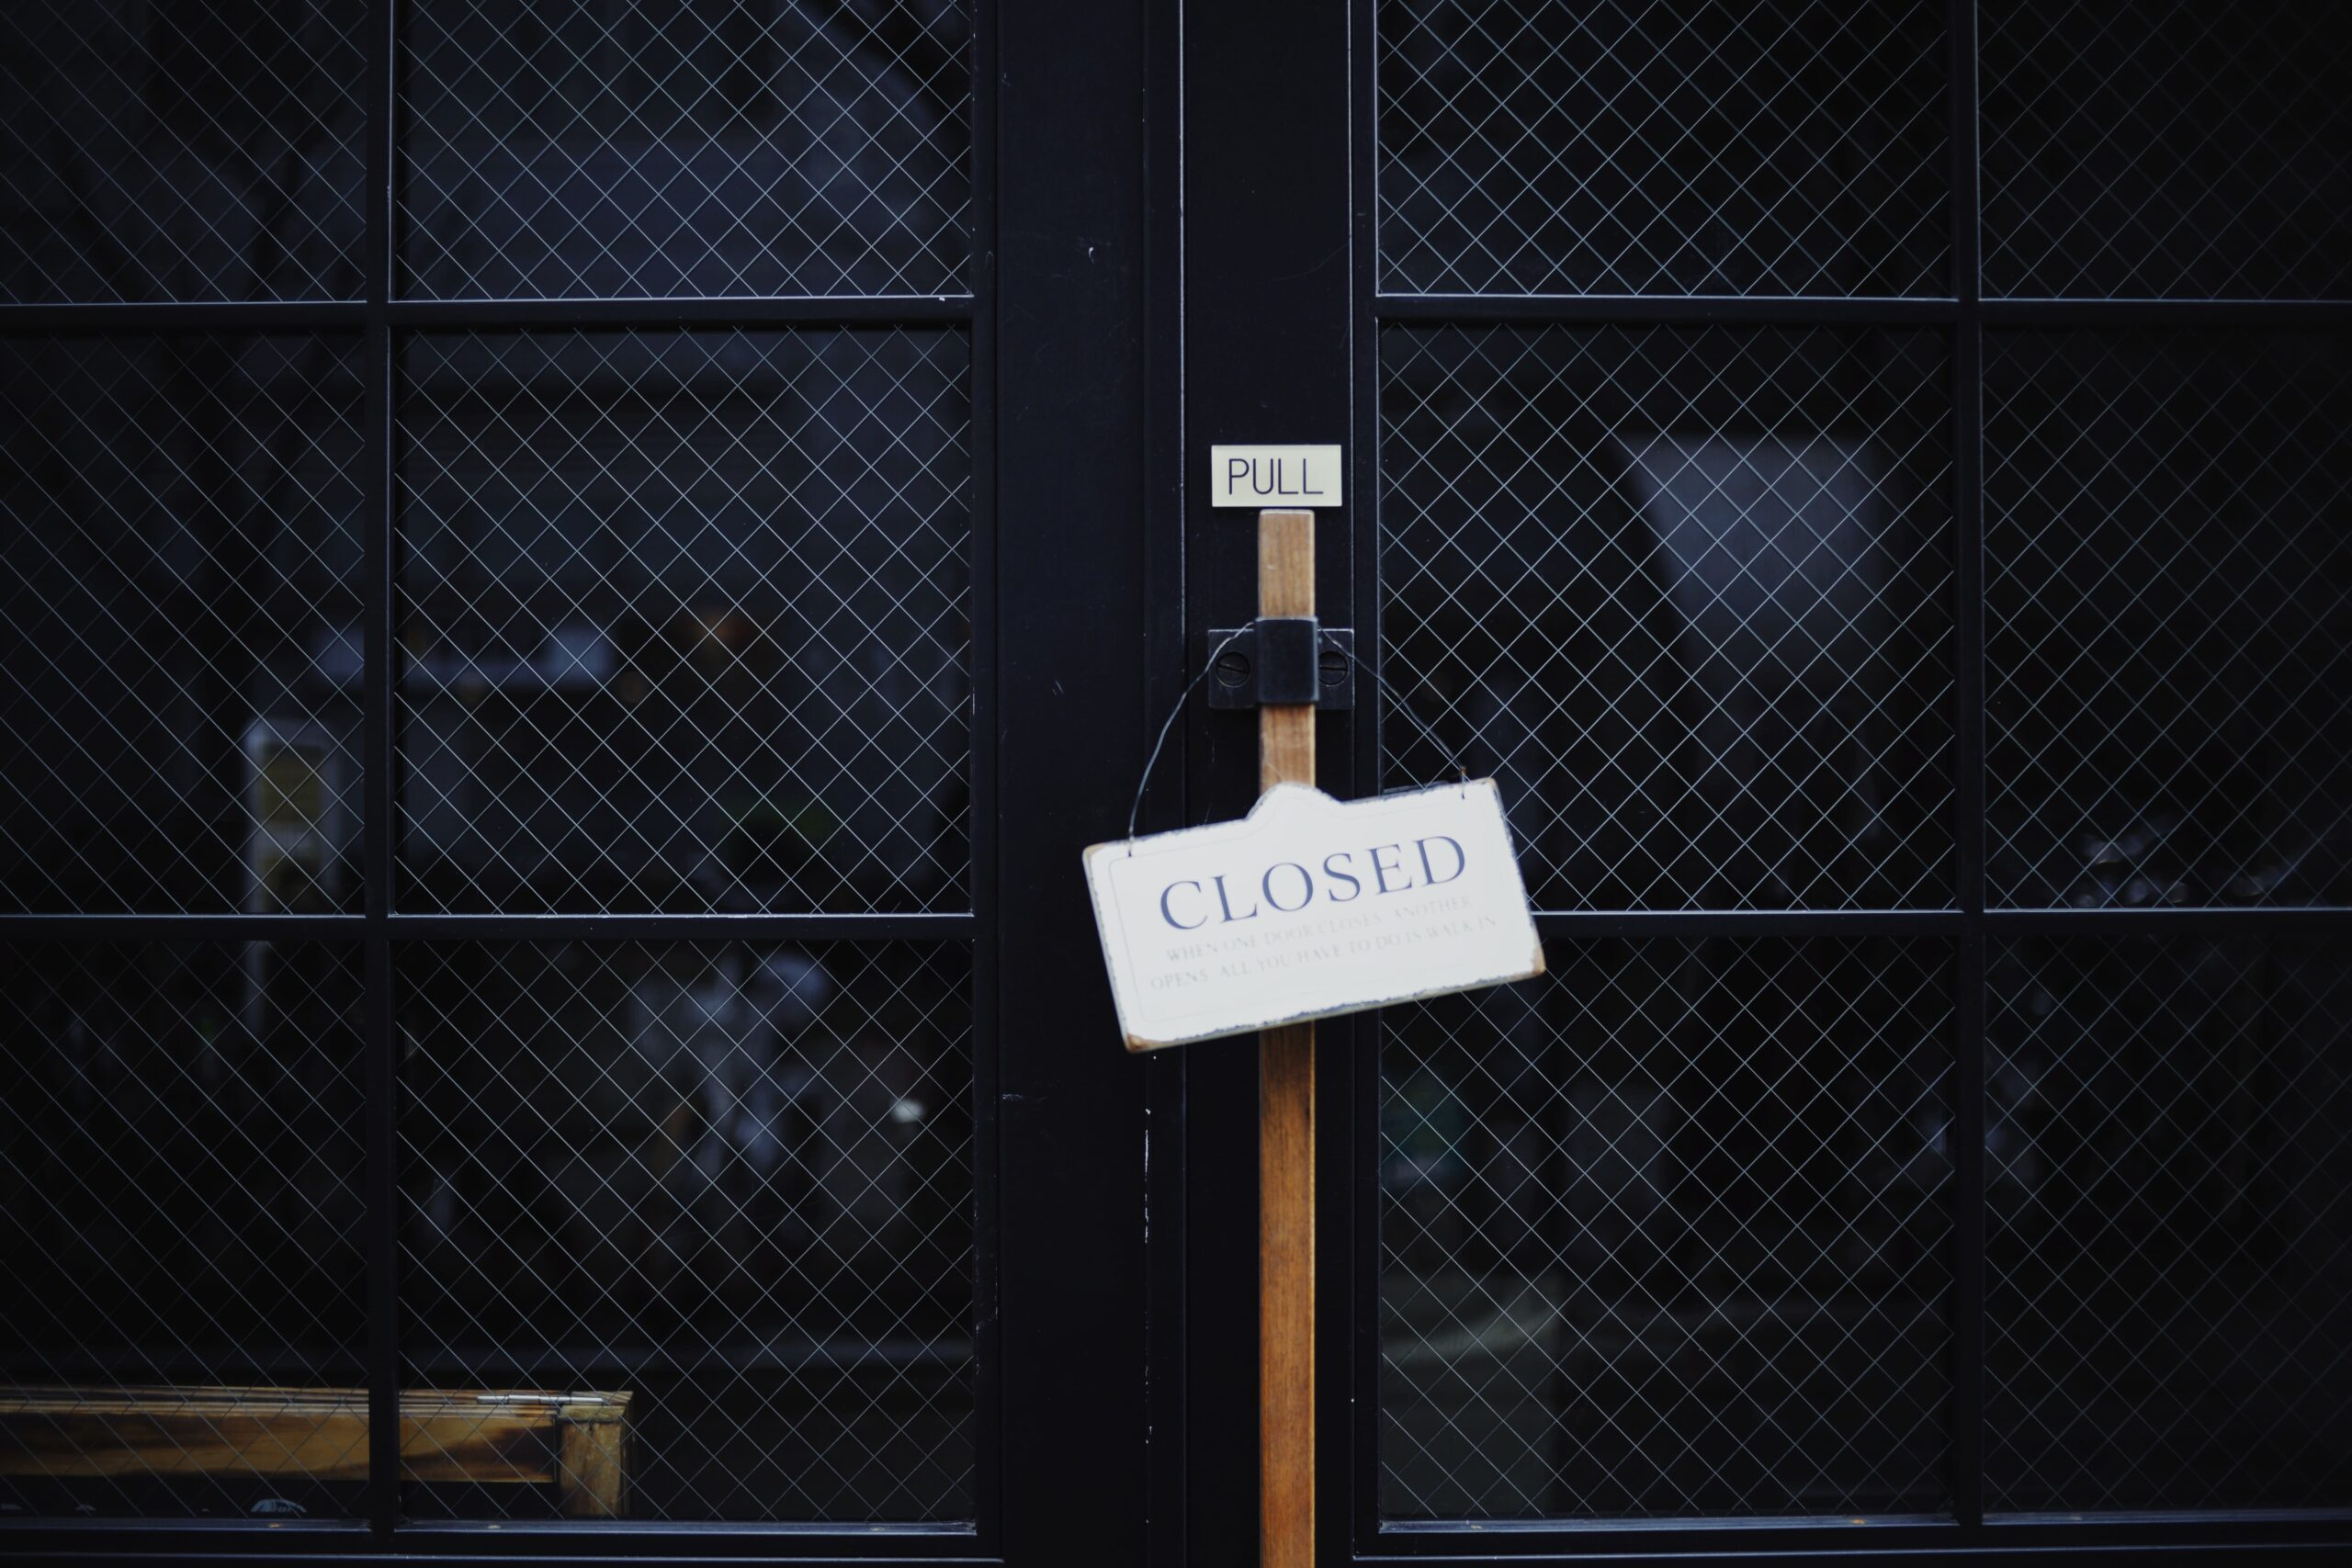 Clients will be hurt: Melbourne brokers face lockdown 2.0